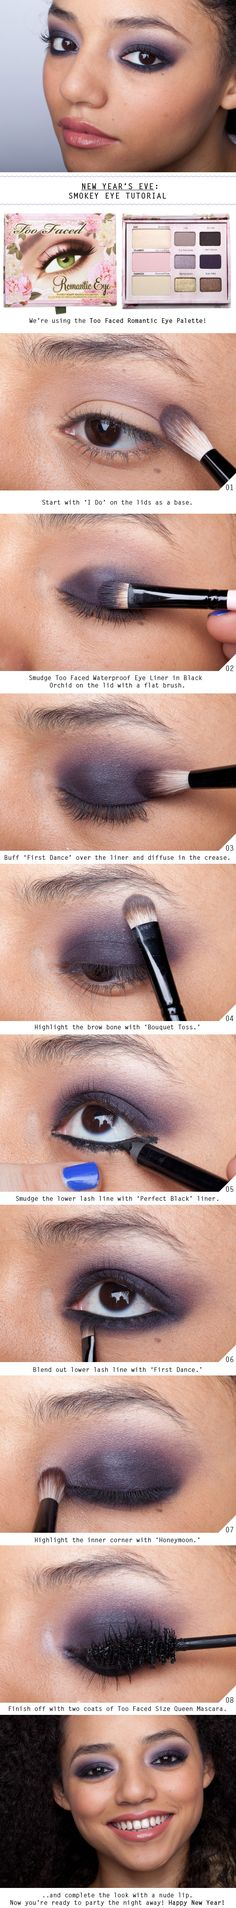 A Smokey Eye Tutorial Fit for New Year's Eve,very easyway to make smokey eyes for beginners